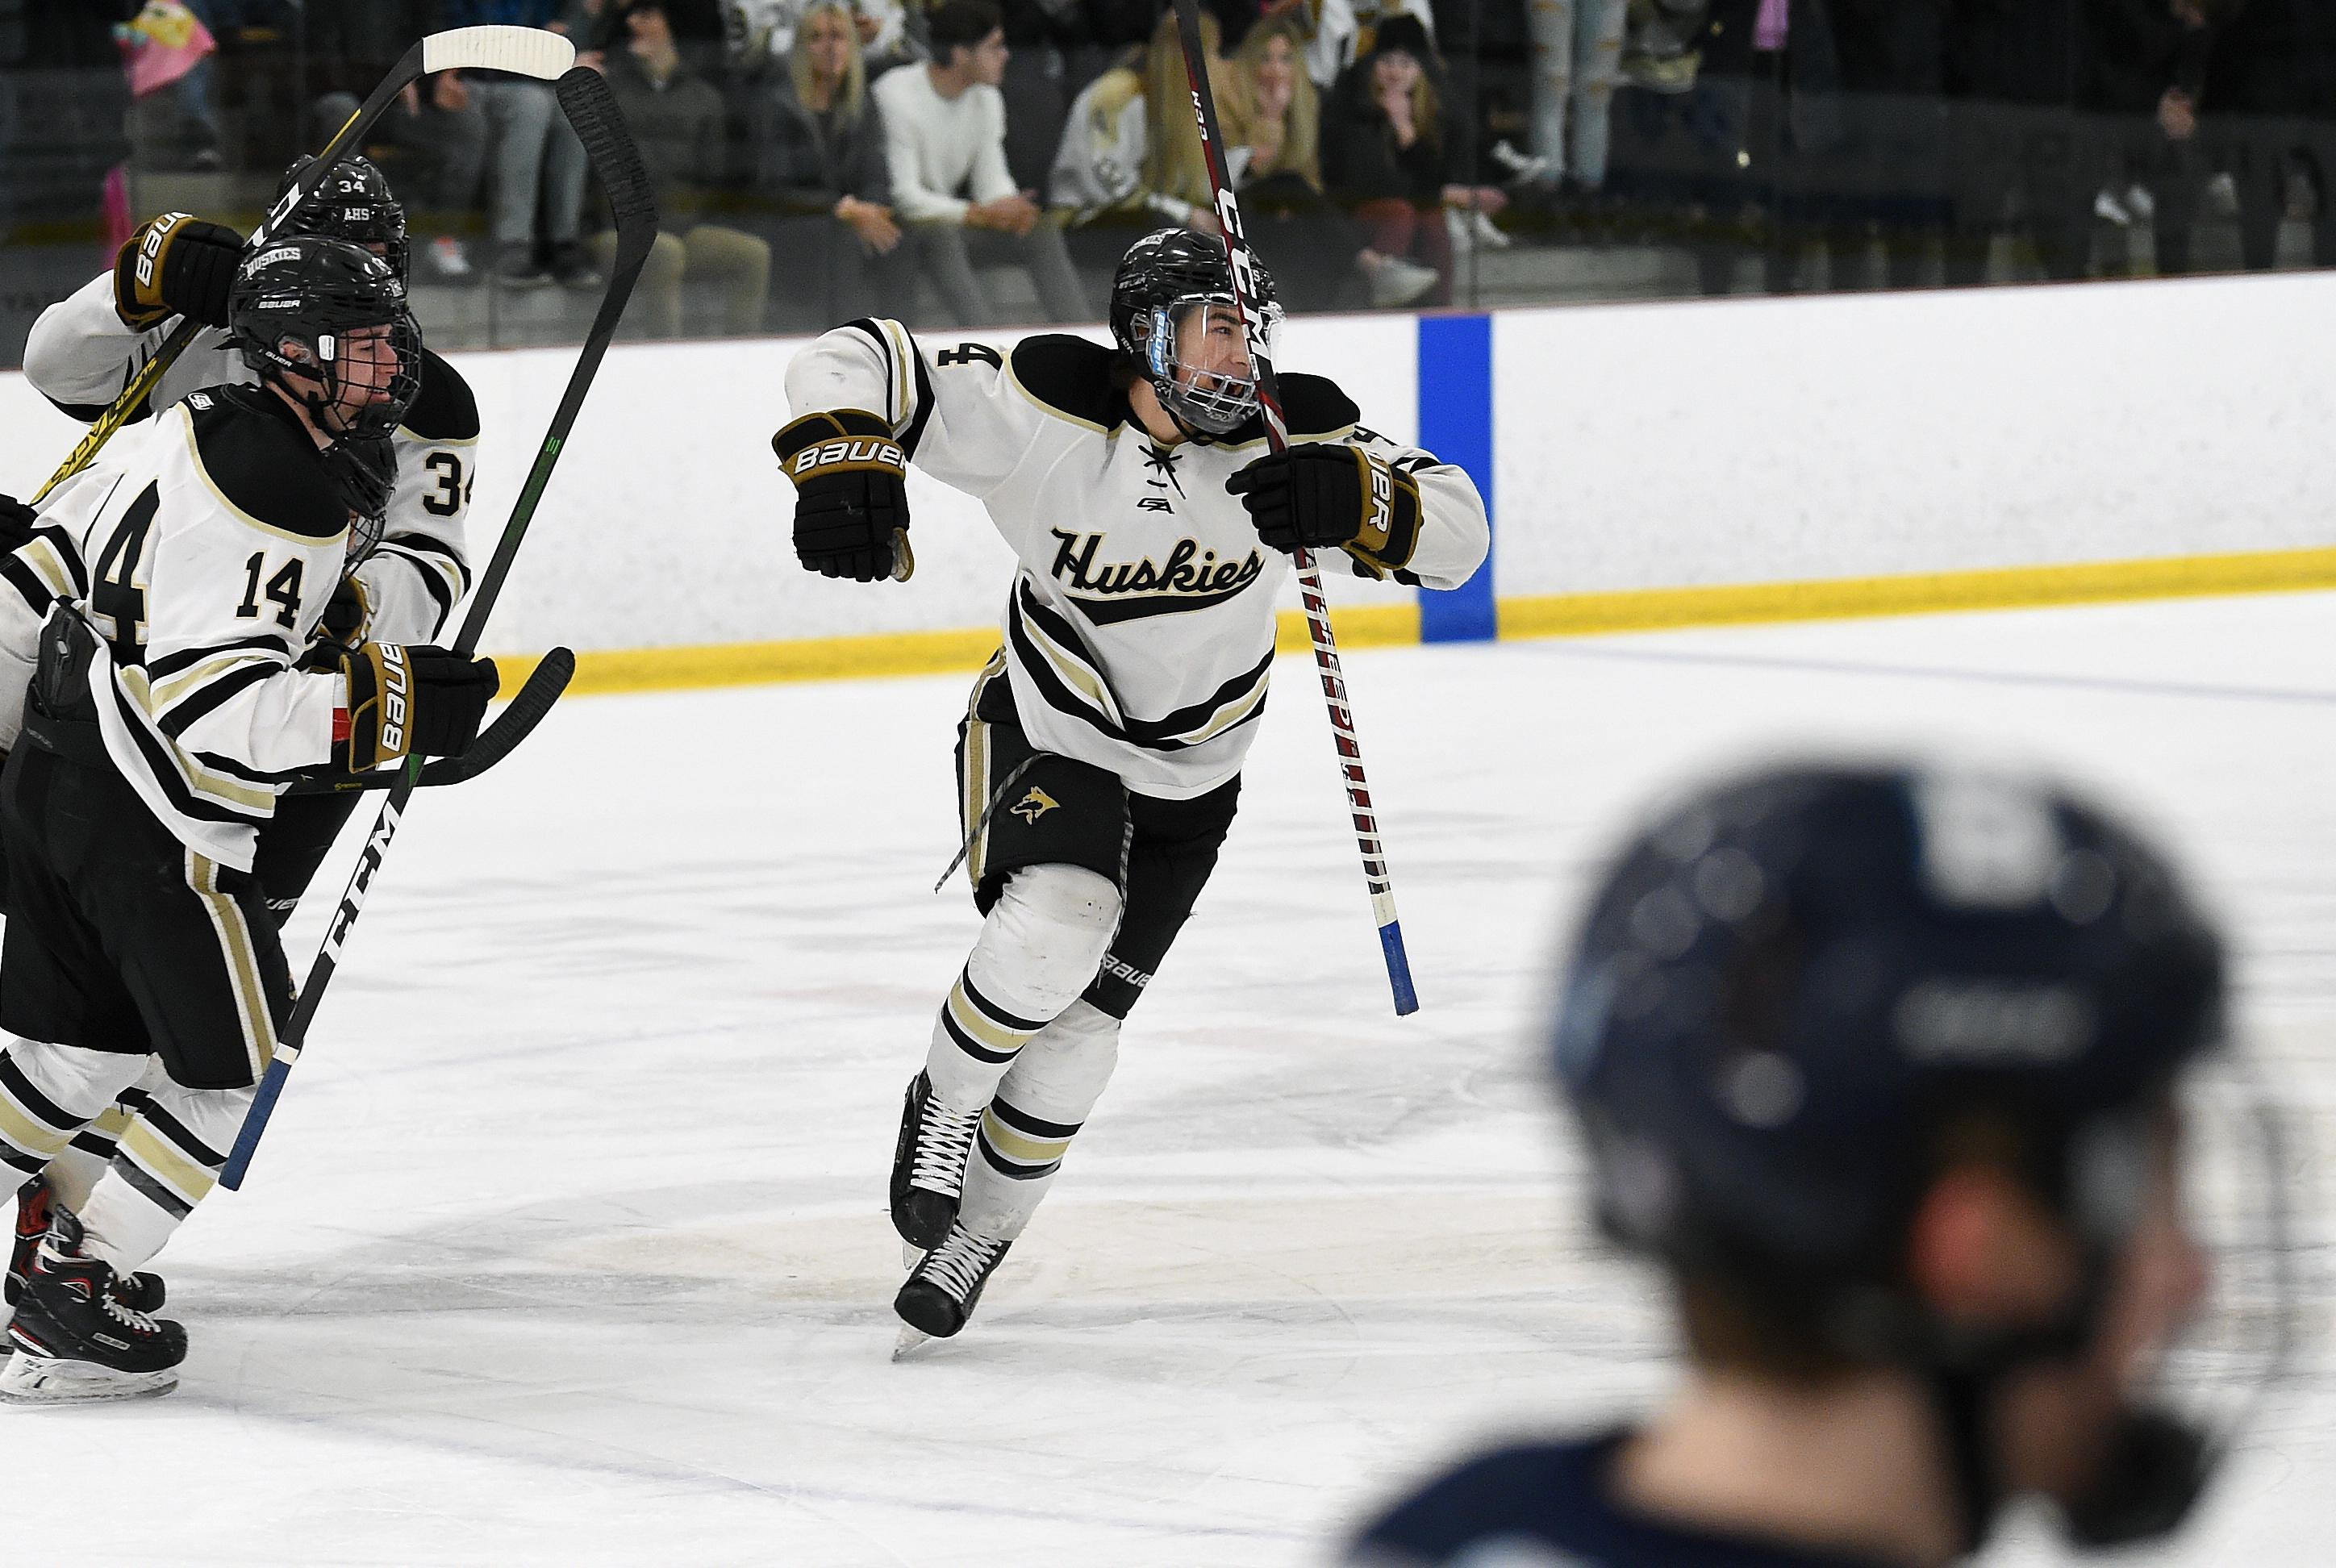 Andover defenseman Mitchell Wolfe, right, celebrates after scoring a second-period goal in the Huskies' 3-0 victory over Blaine on Saturday. Photo by Loren Nelson, LegacyHockeyPhotography.com